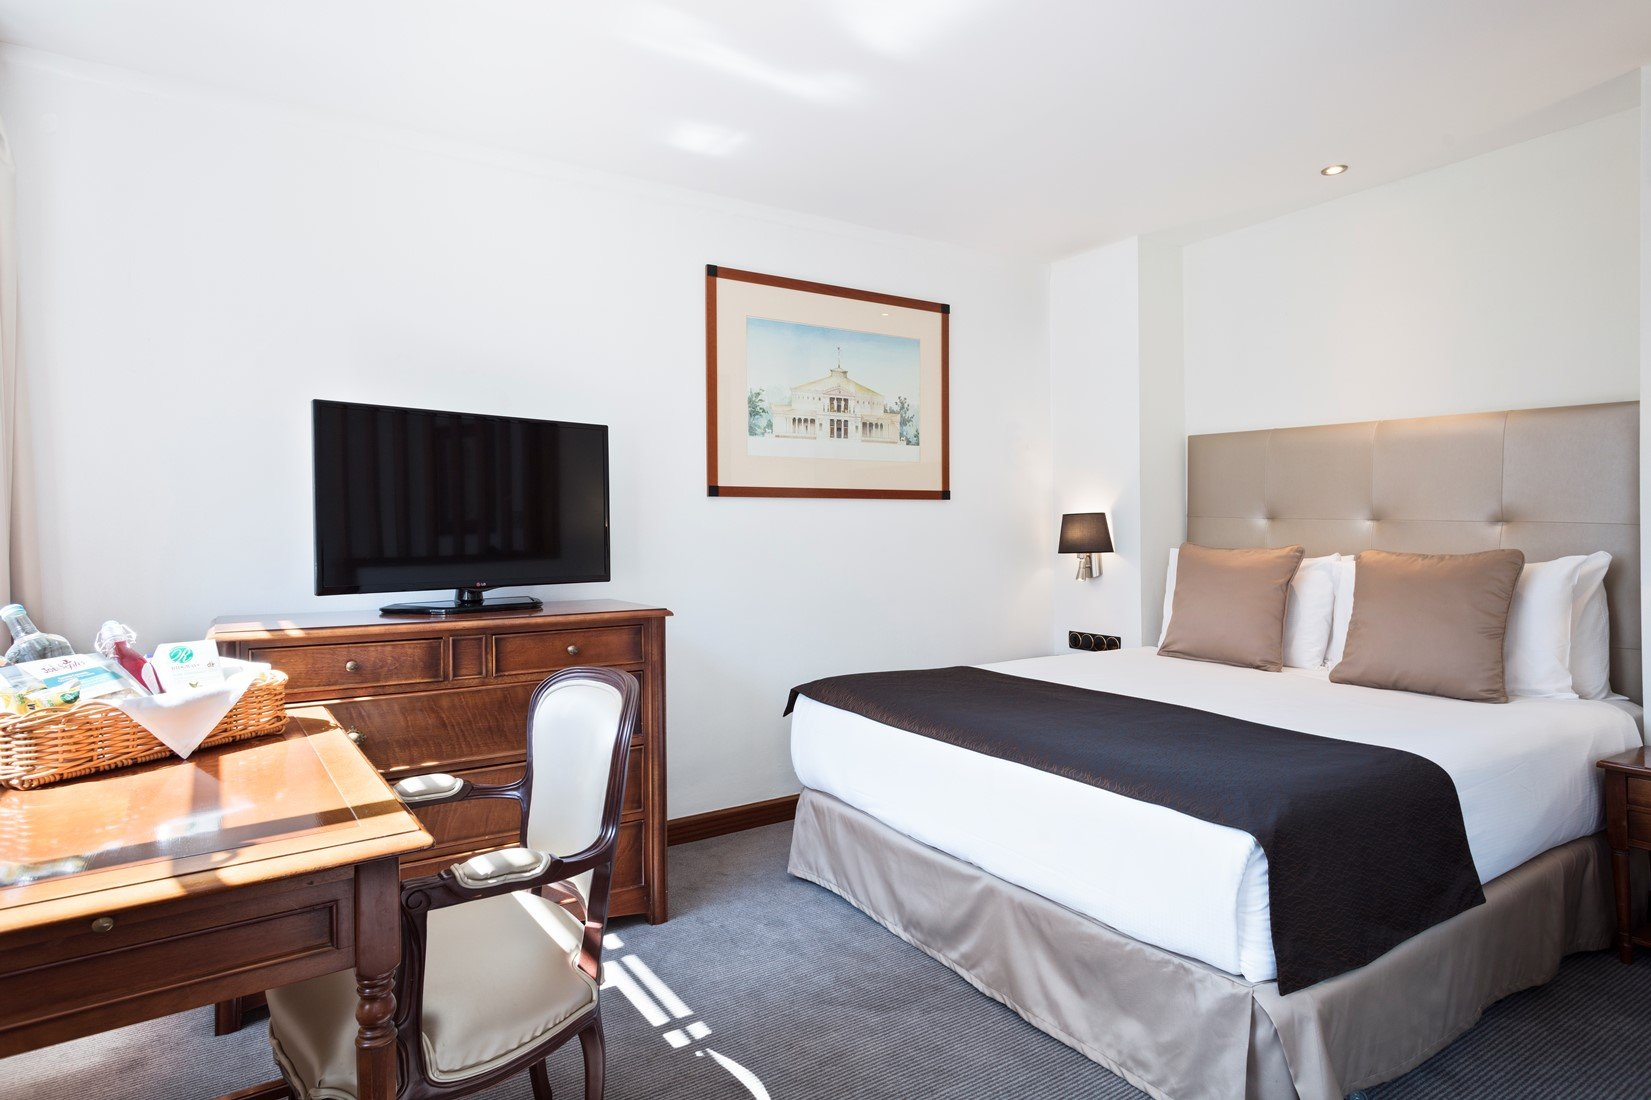 Low-Cost-Luxury-Regents-Park-Serviced-Apartments-London!-Book-With-Urban-Stay-today-from-only-£92/night!-Free-Wifi-+-Gym-+-Reception!